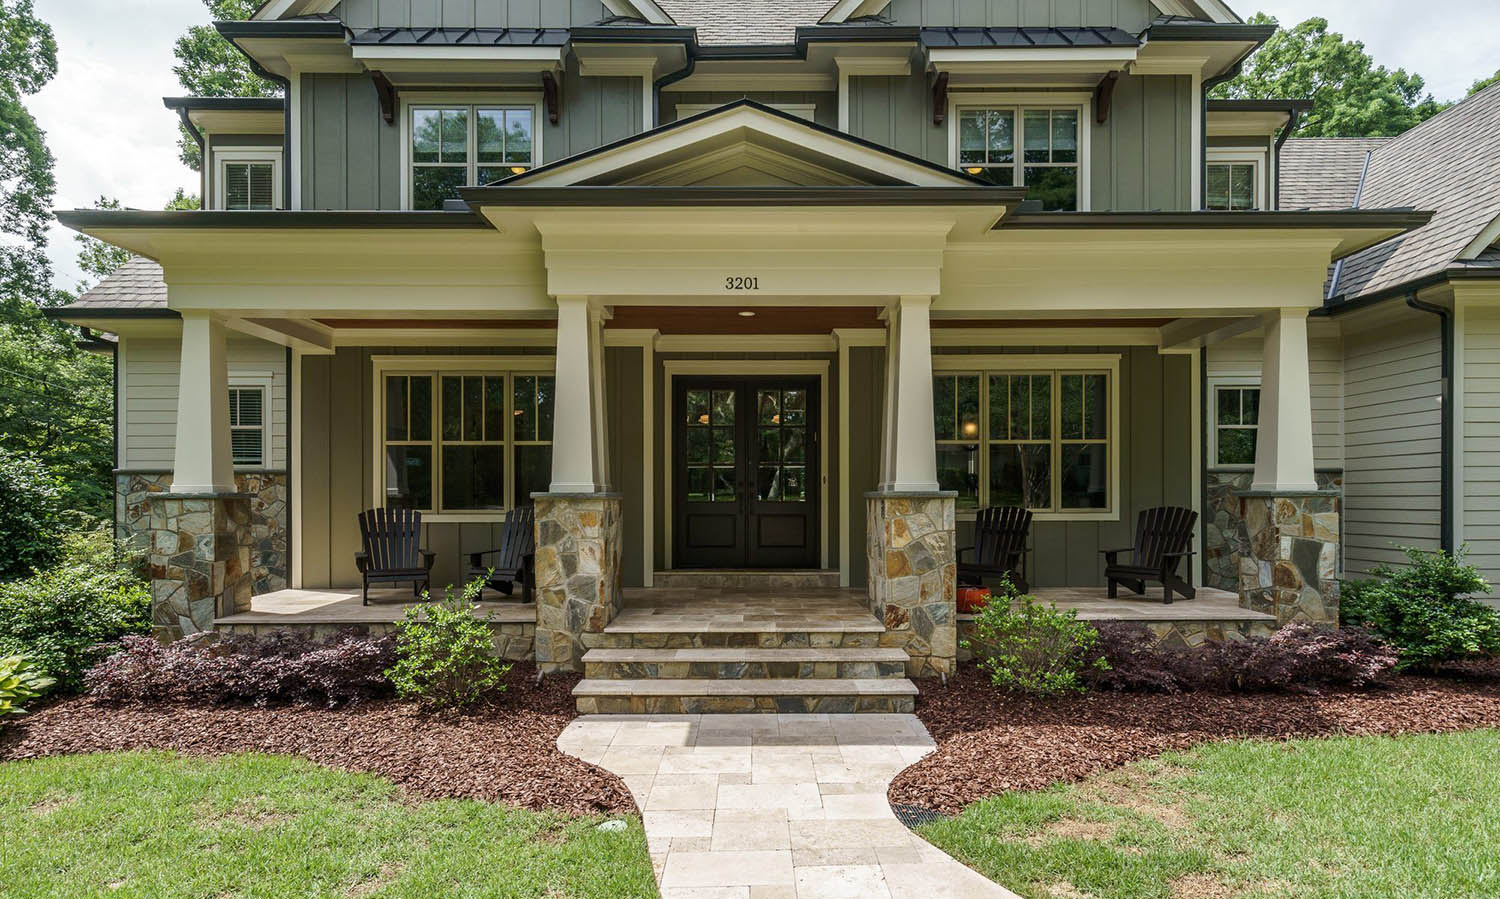 Beautiful home with dark green siding and a black front door.